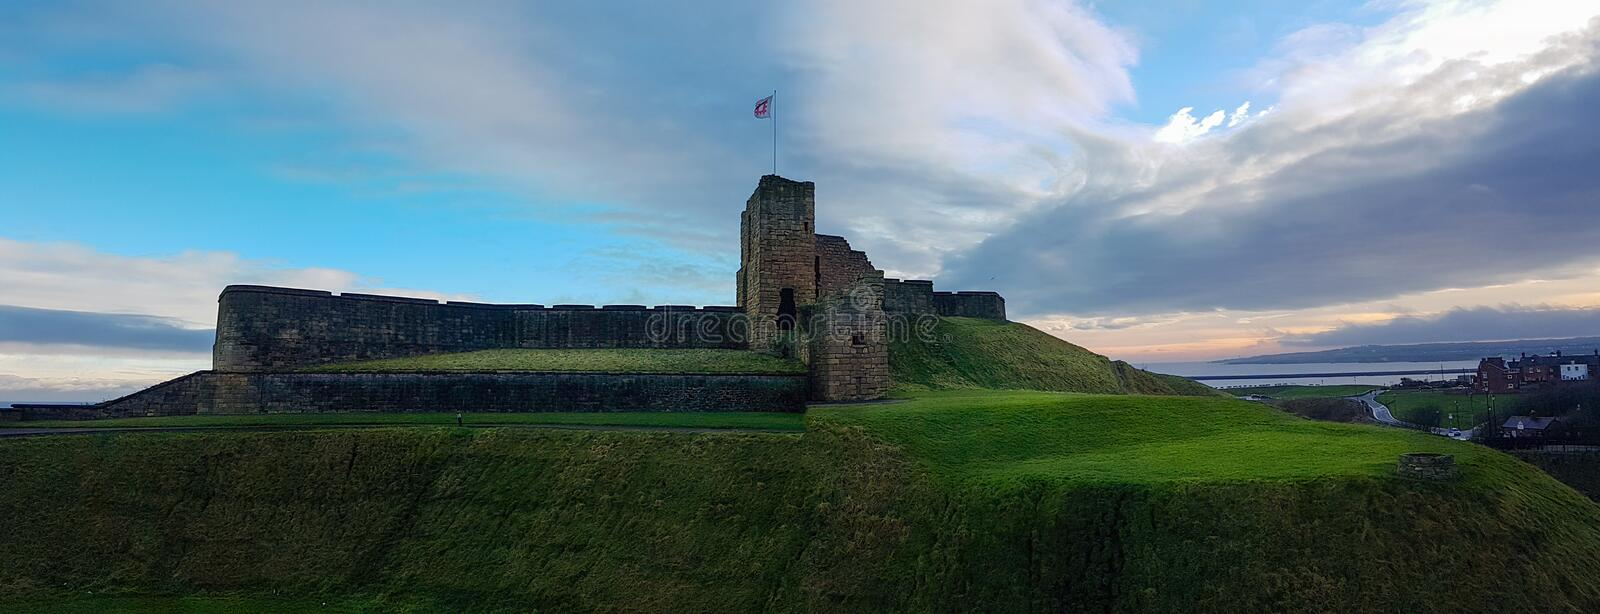 Medieval Tynemouth Priory and Castle ruins panorama, United King. Panoramic view of the ruins of the medieval Tynemouth Priory and Castle in the United Kingdom royalty free stock image